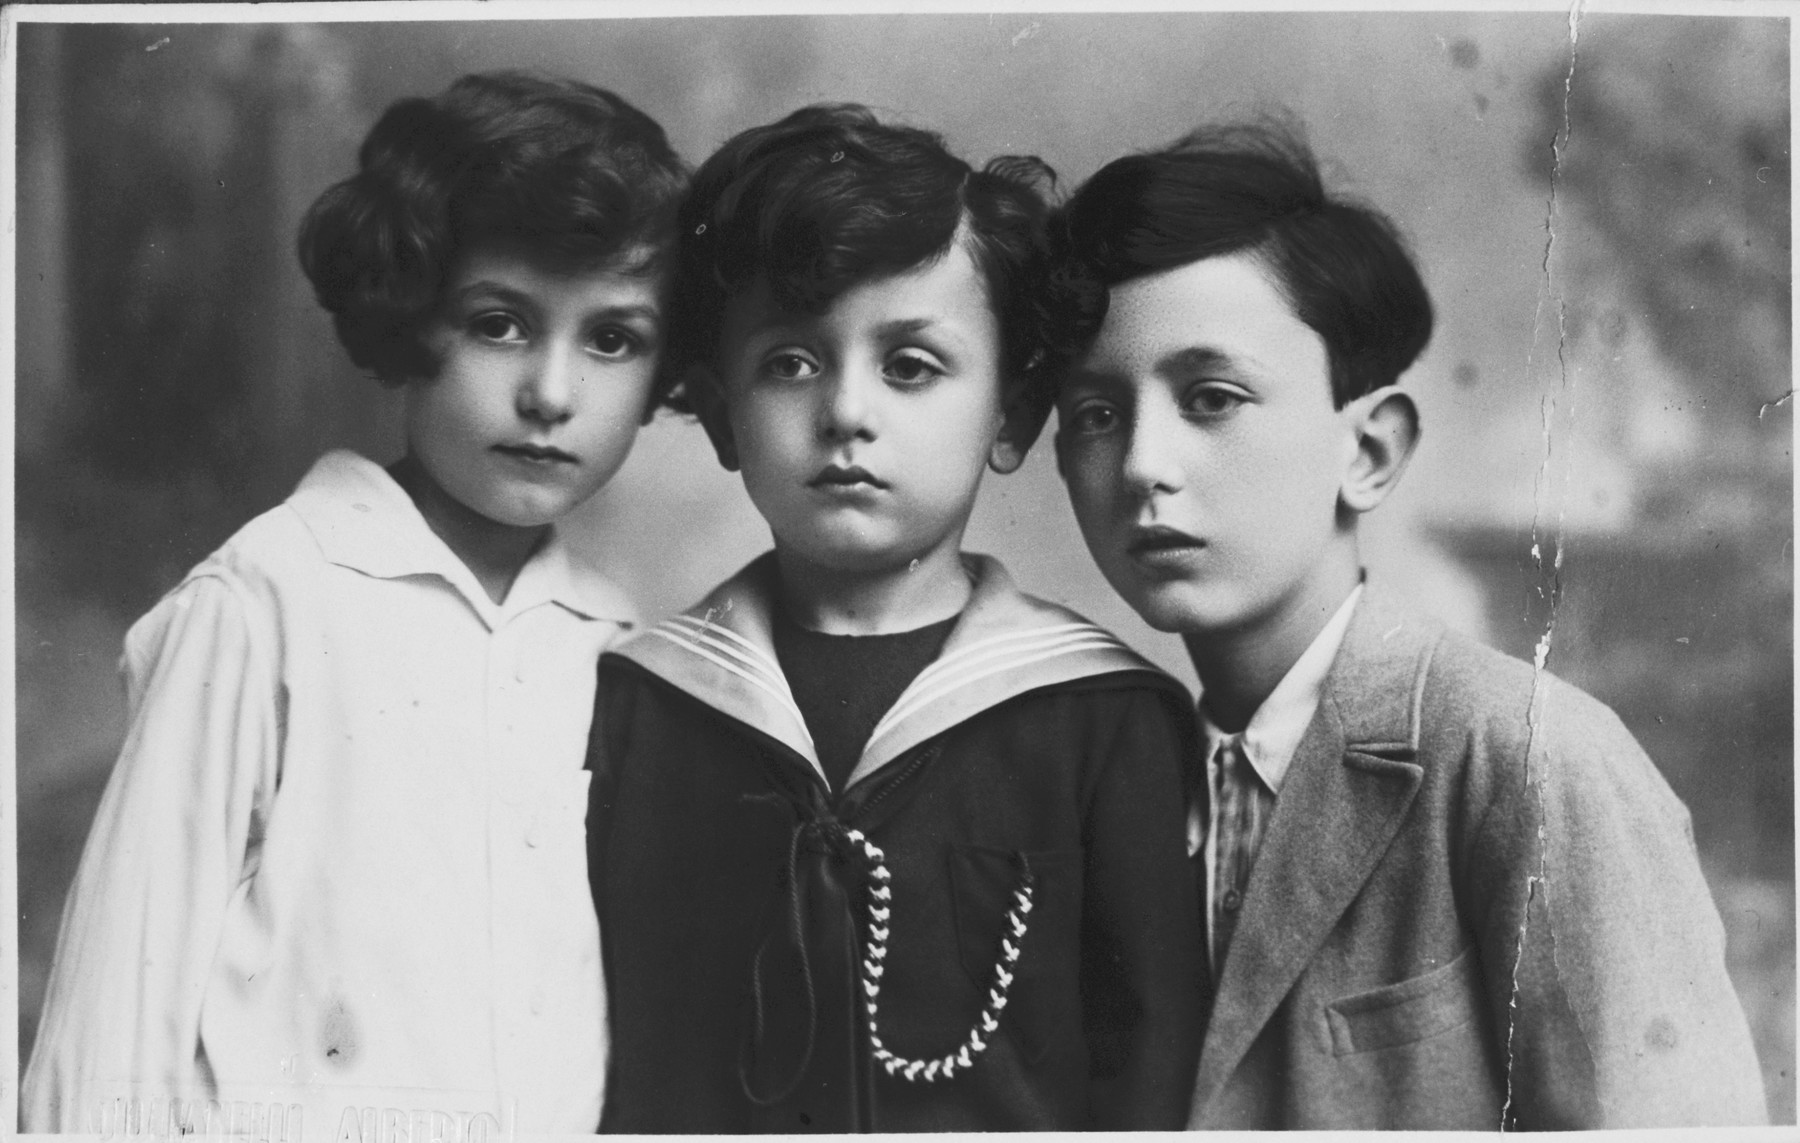 Studio portrait of three Italian-Jewish siblings, the children of Leo Minerbi.  Pictured are cousins of Sergio Minerbi, (from left) Luisa, Giorgio-Lot, and Ruggero.